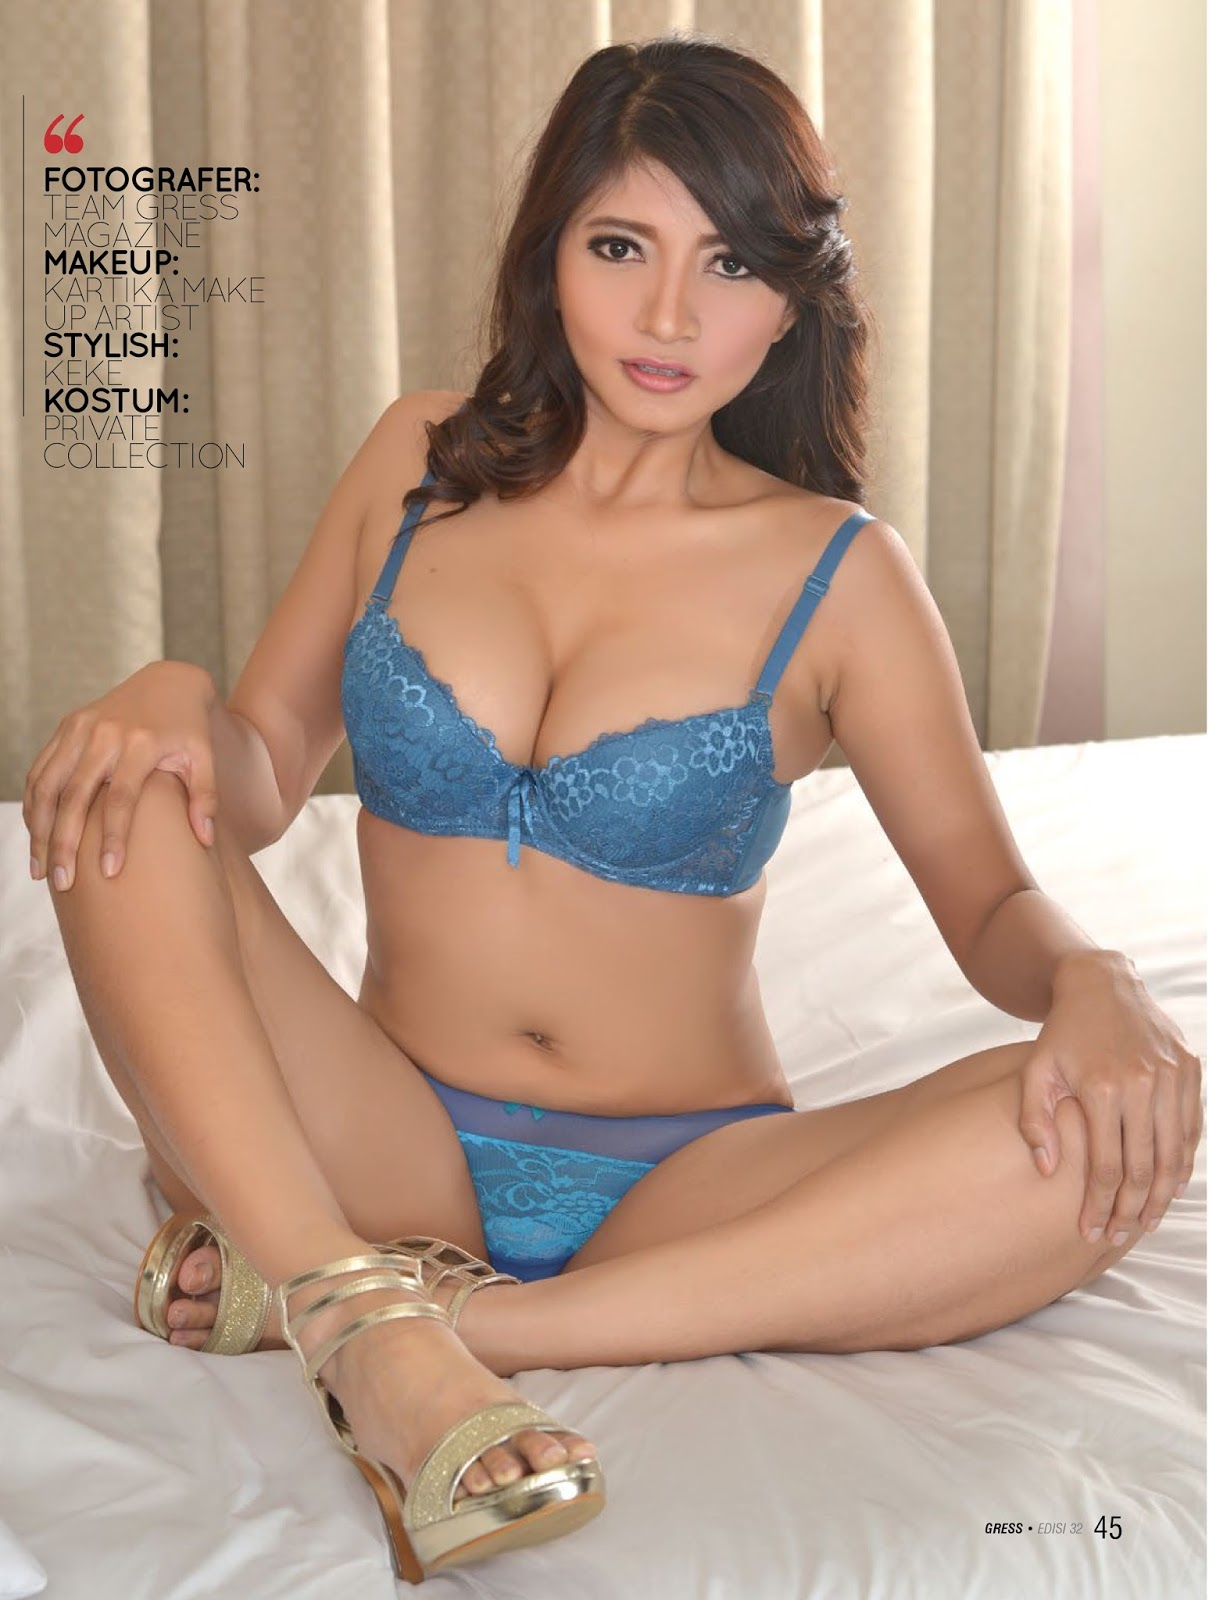 full koleksi foto hot aya beby model seksi cantik gress